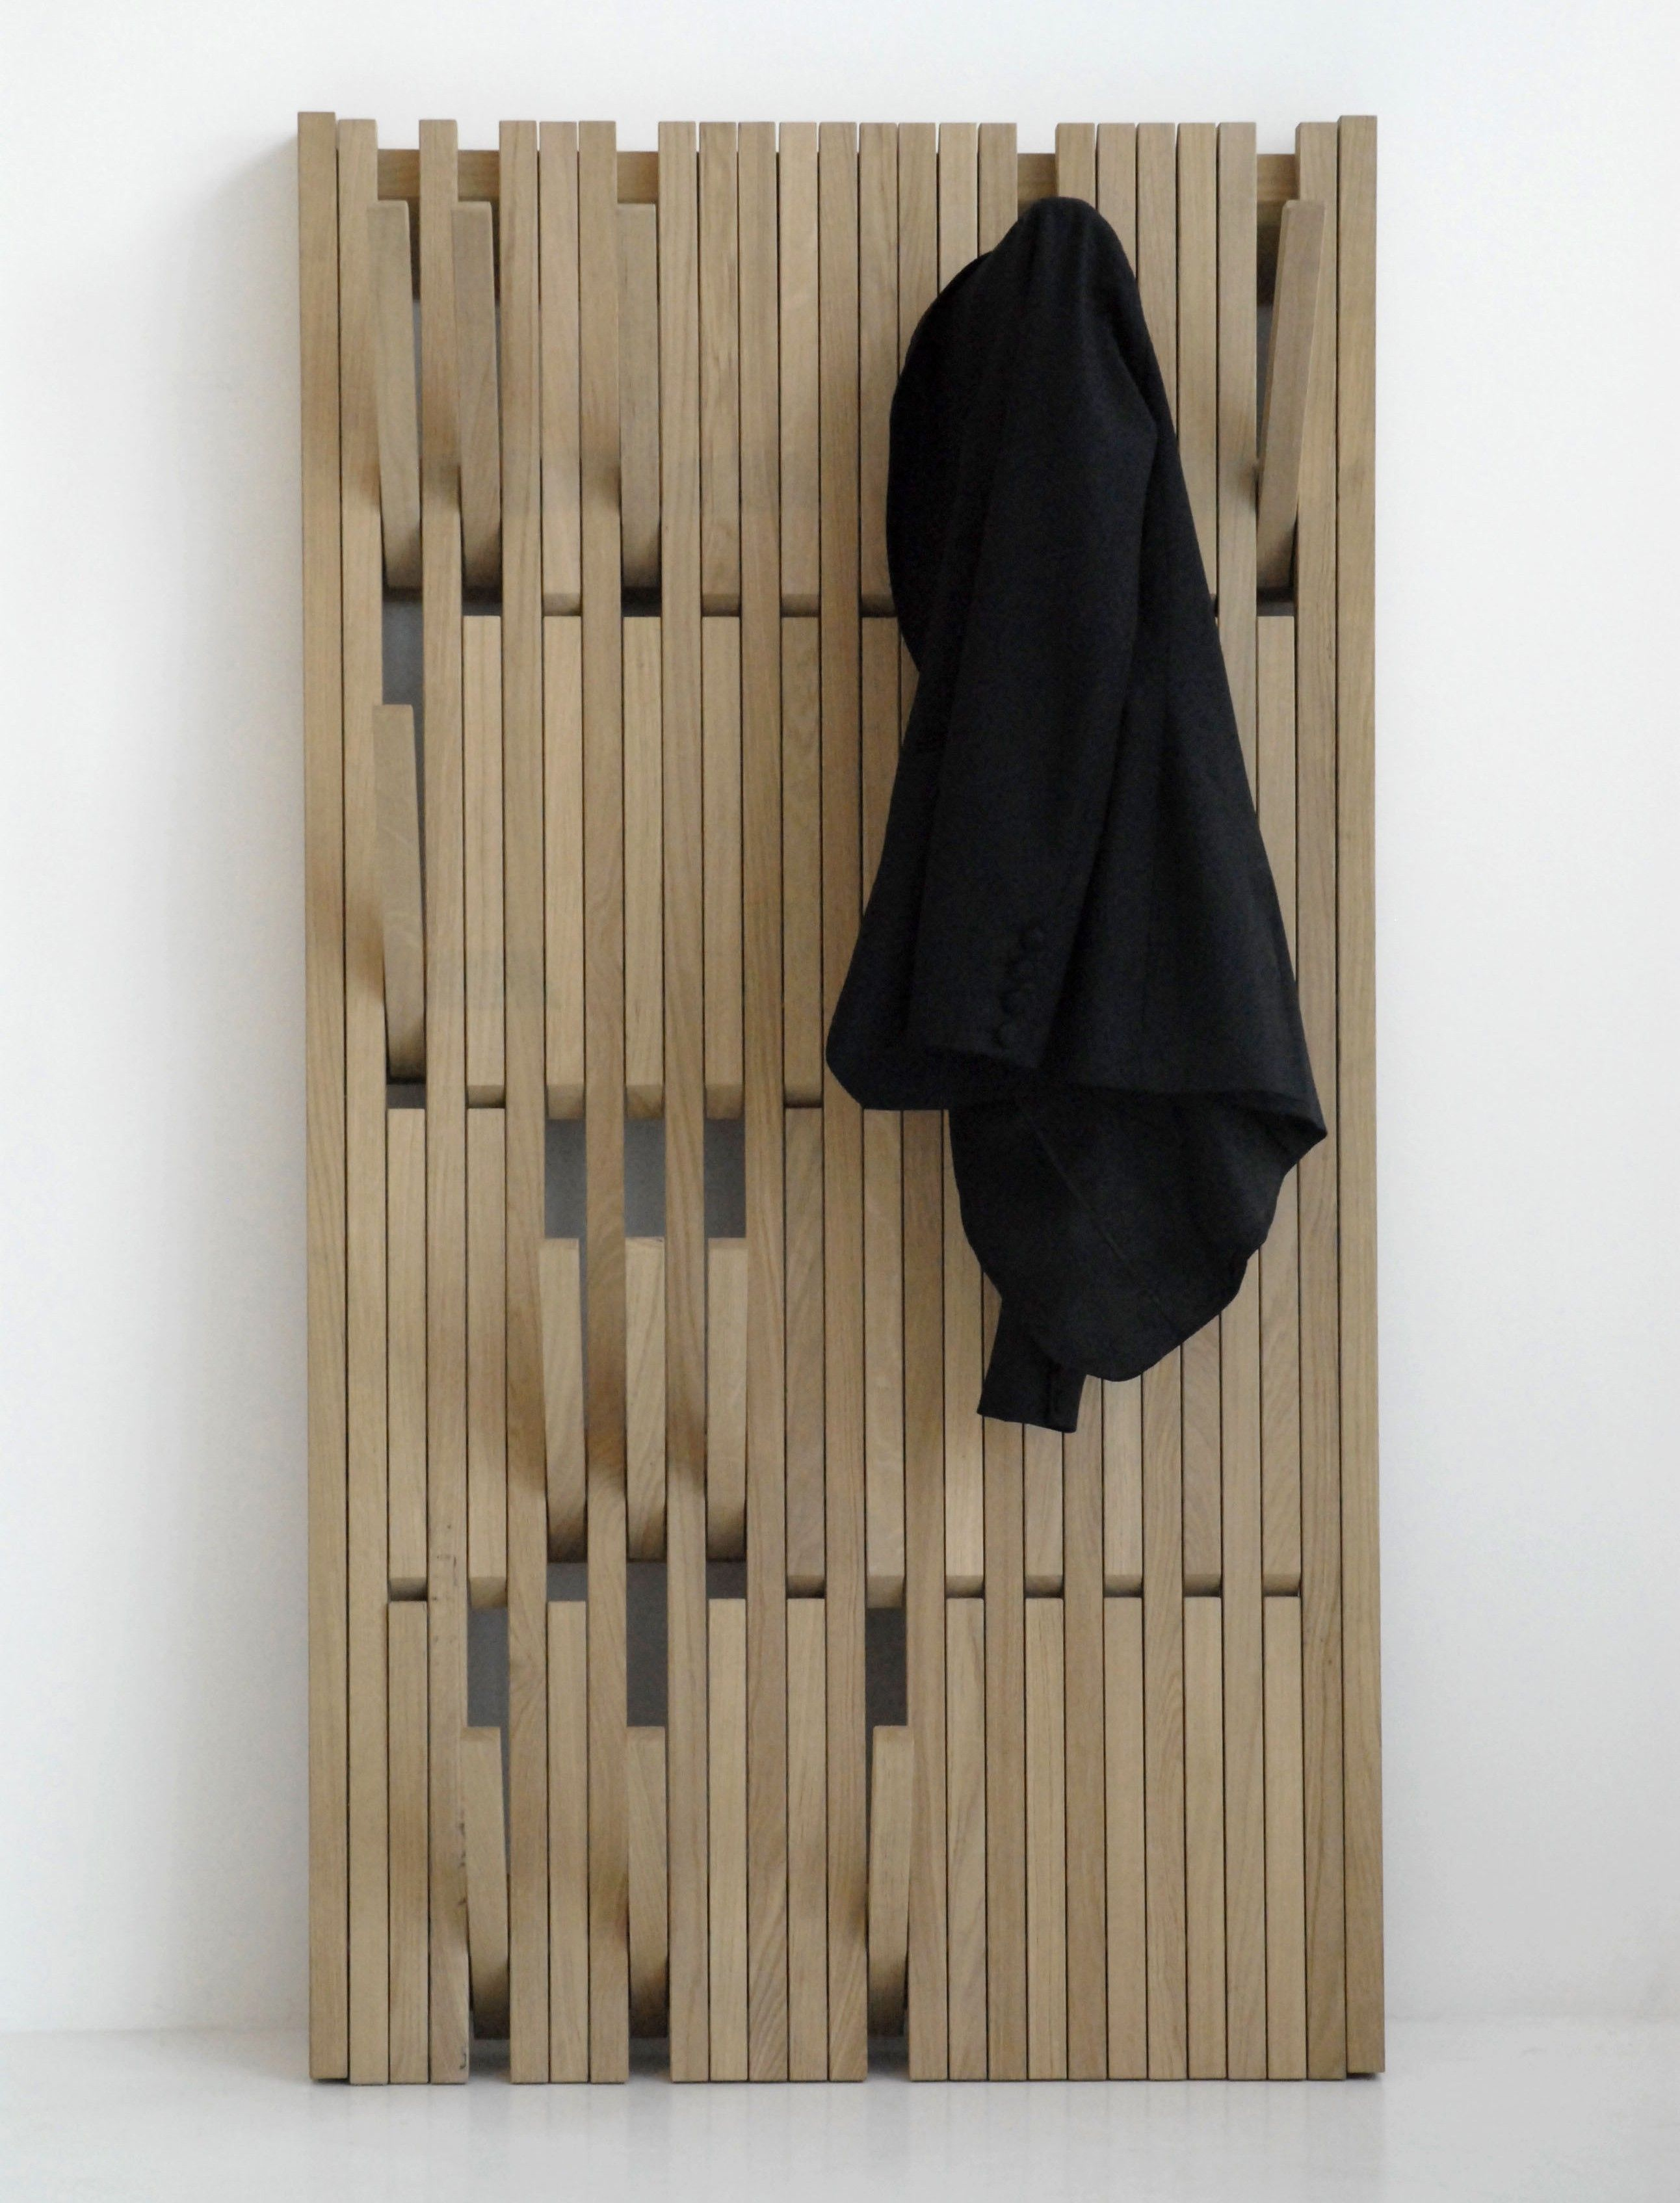 The Piano Hanger Designed By Patrick Seha For The Belgian